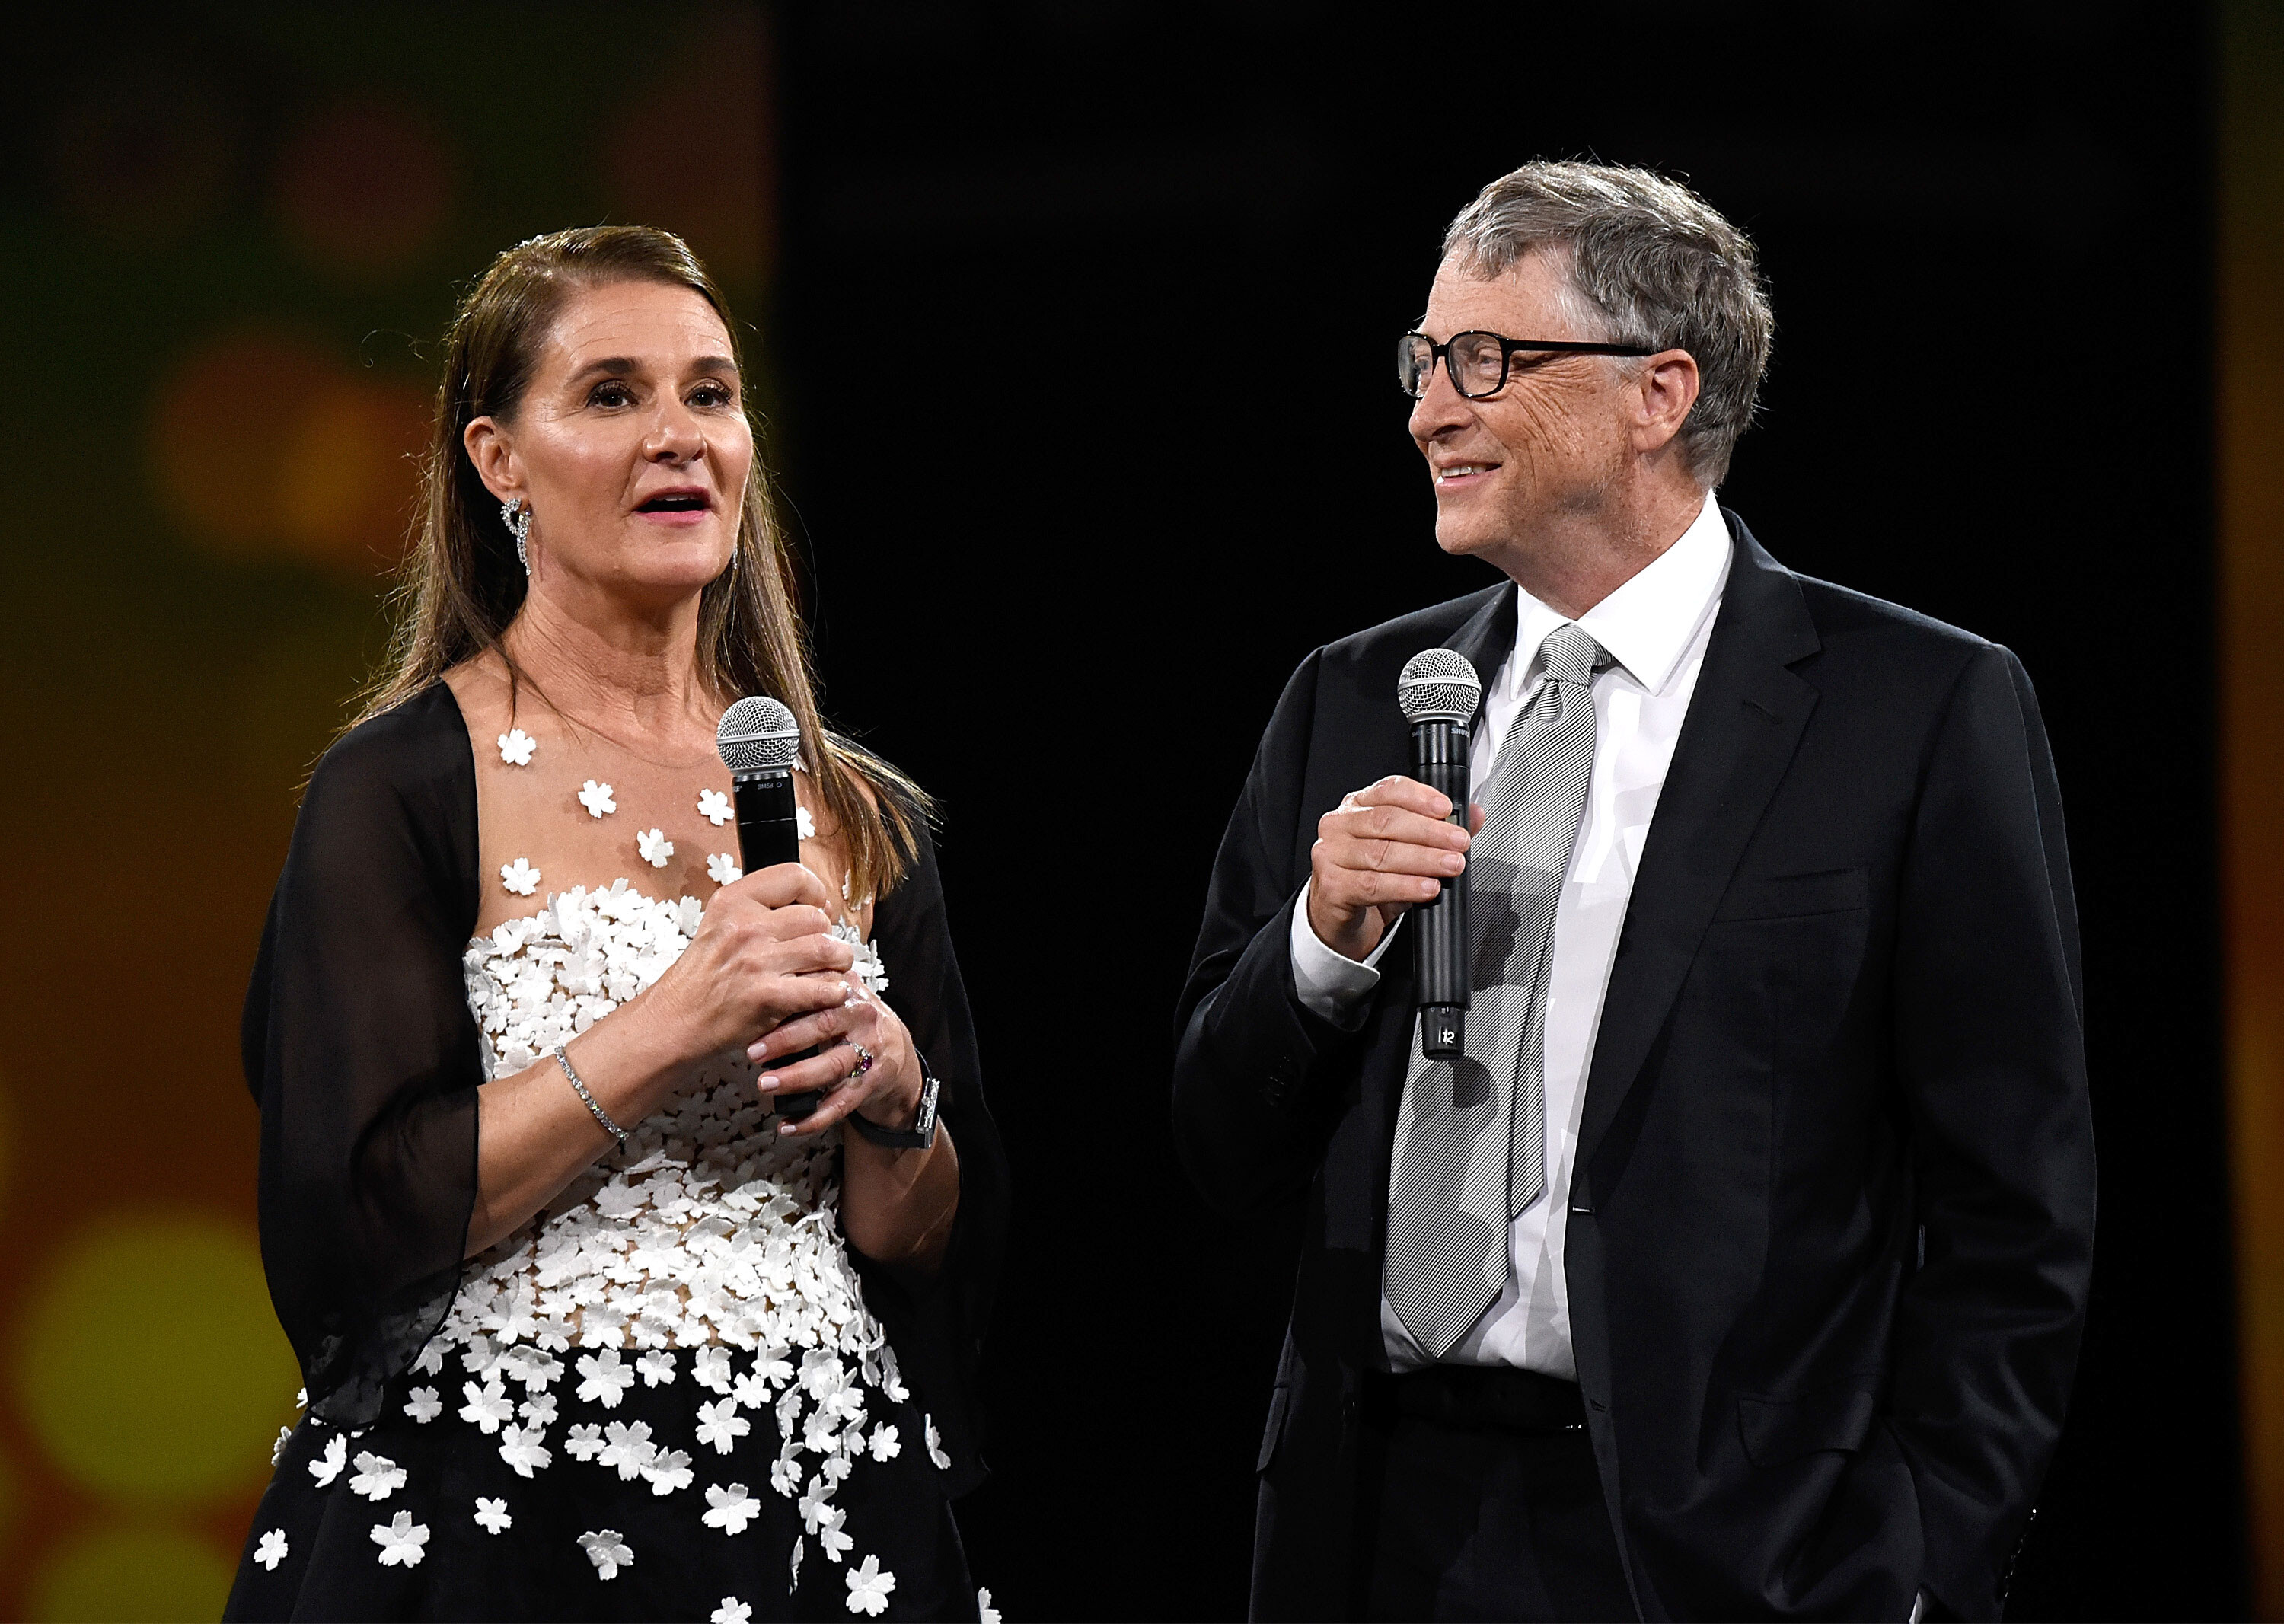 Bill Gates could oust Melinda French Gates from their foundation in 2023